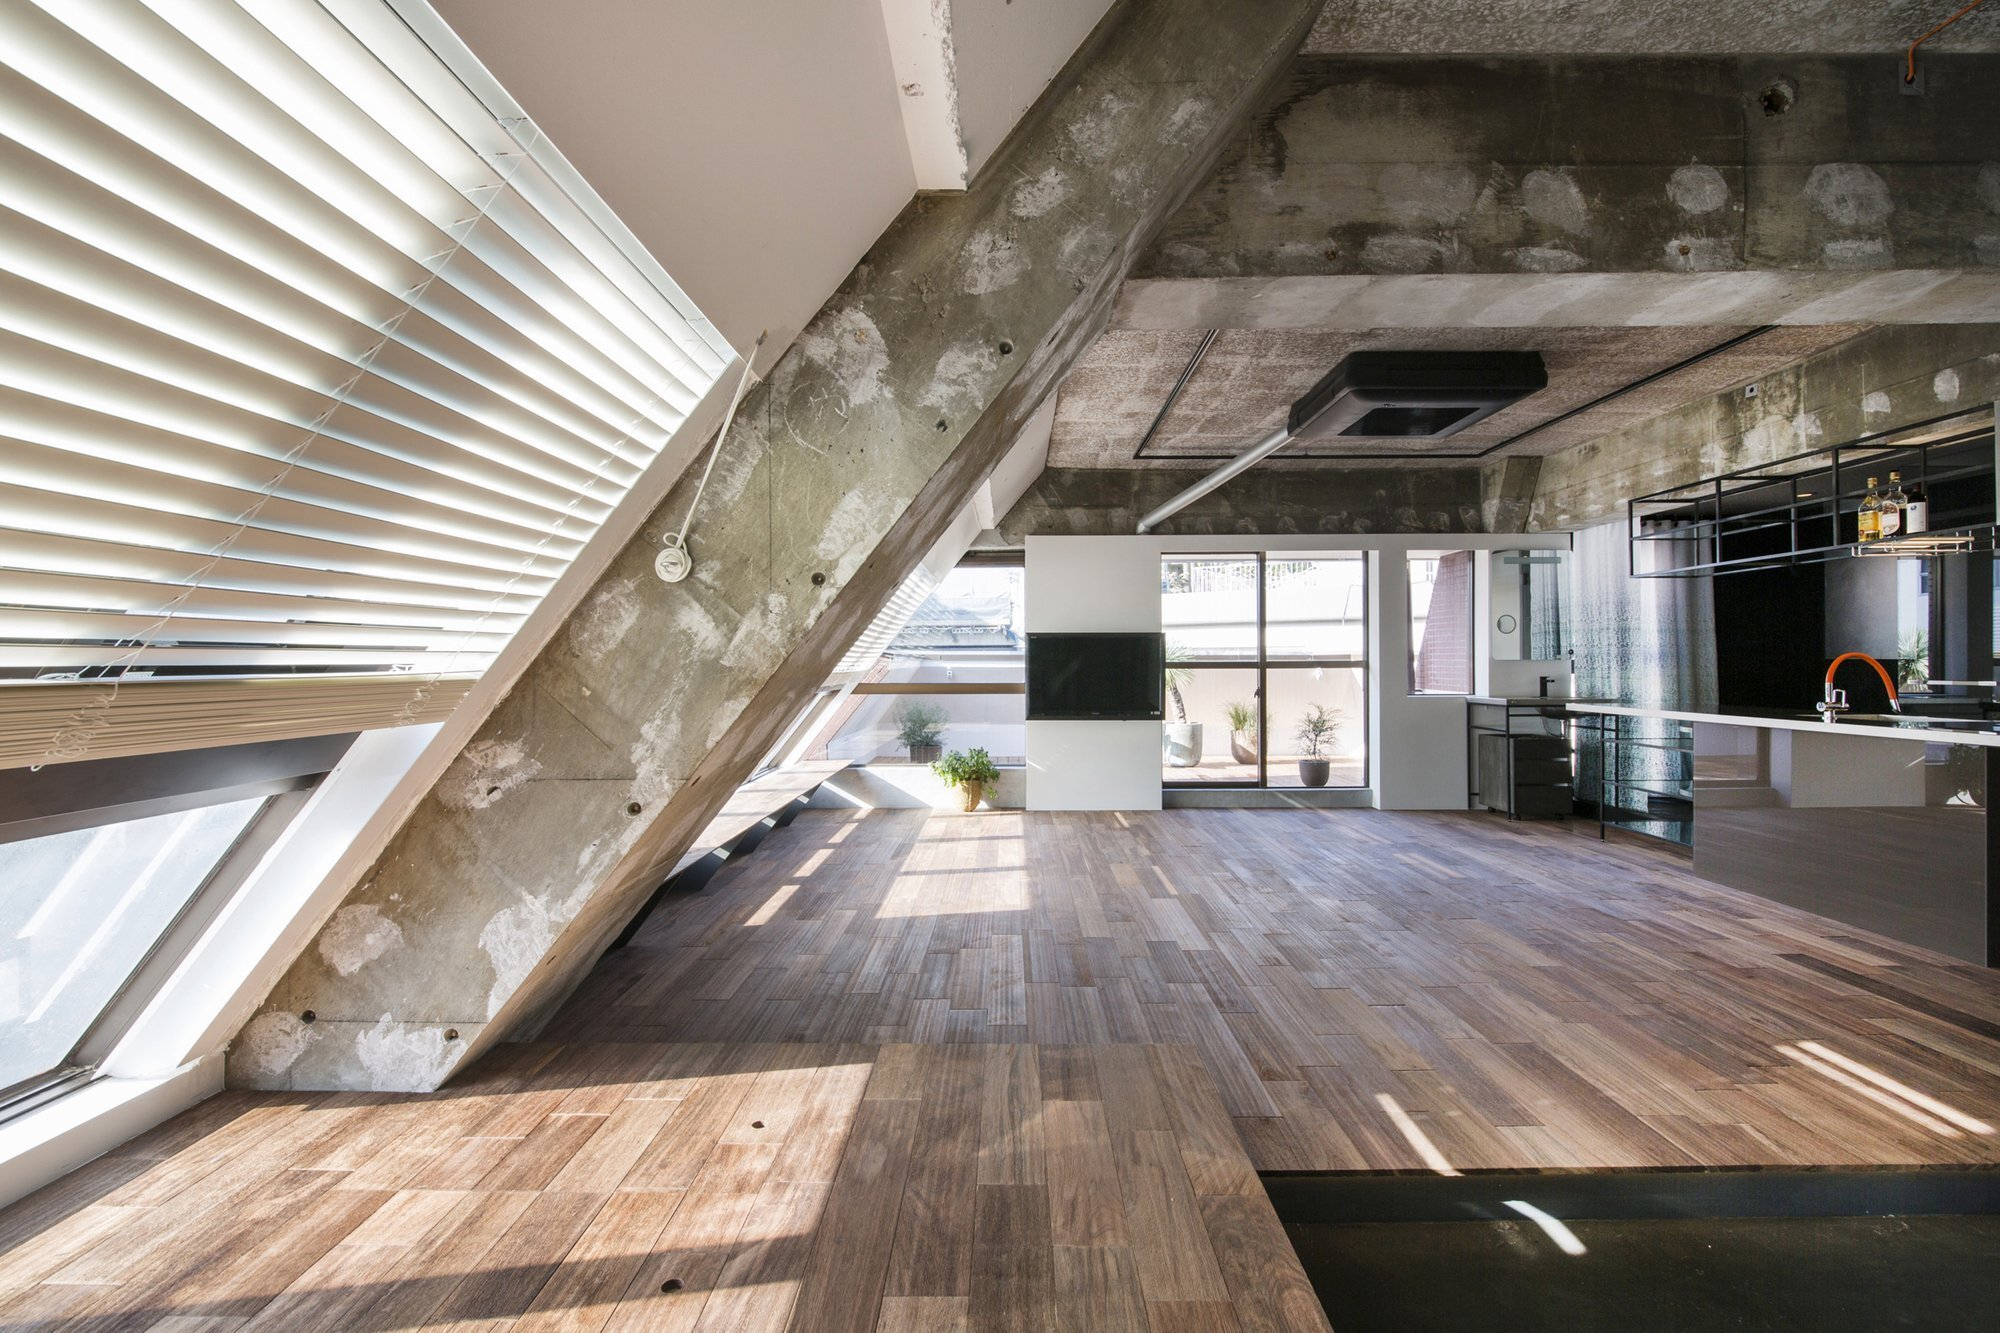 painting ideas slanted ceiling - An Apartment Block Attic Conversion in Tokyo by G Architects